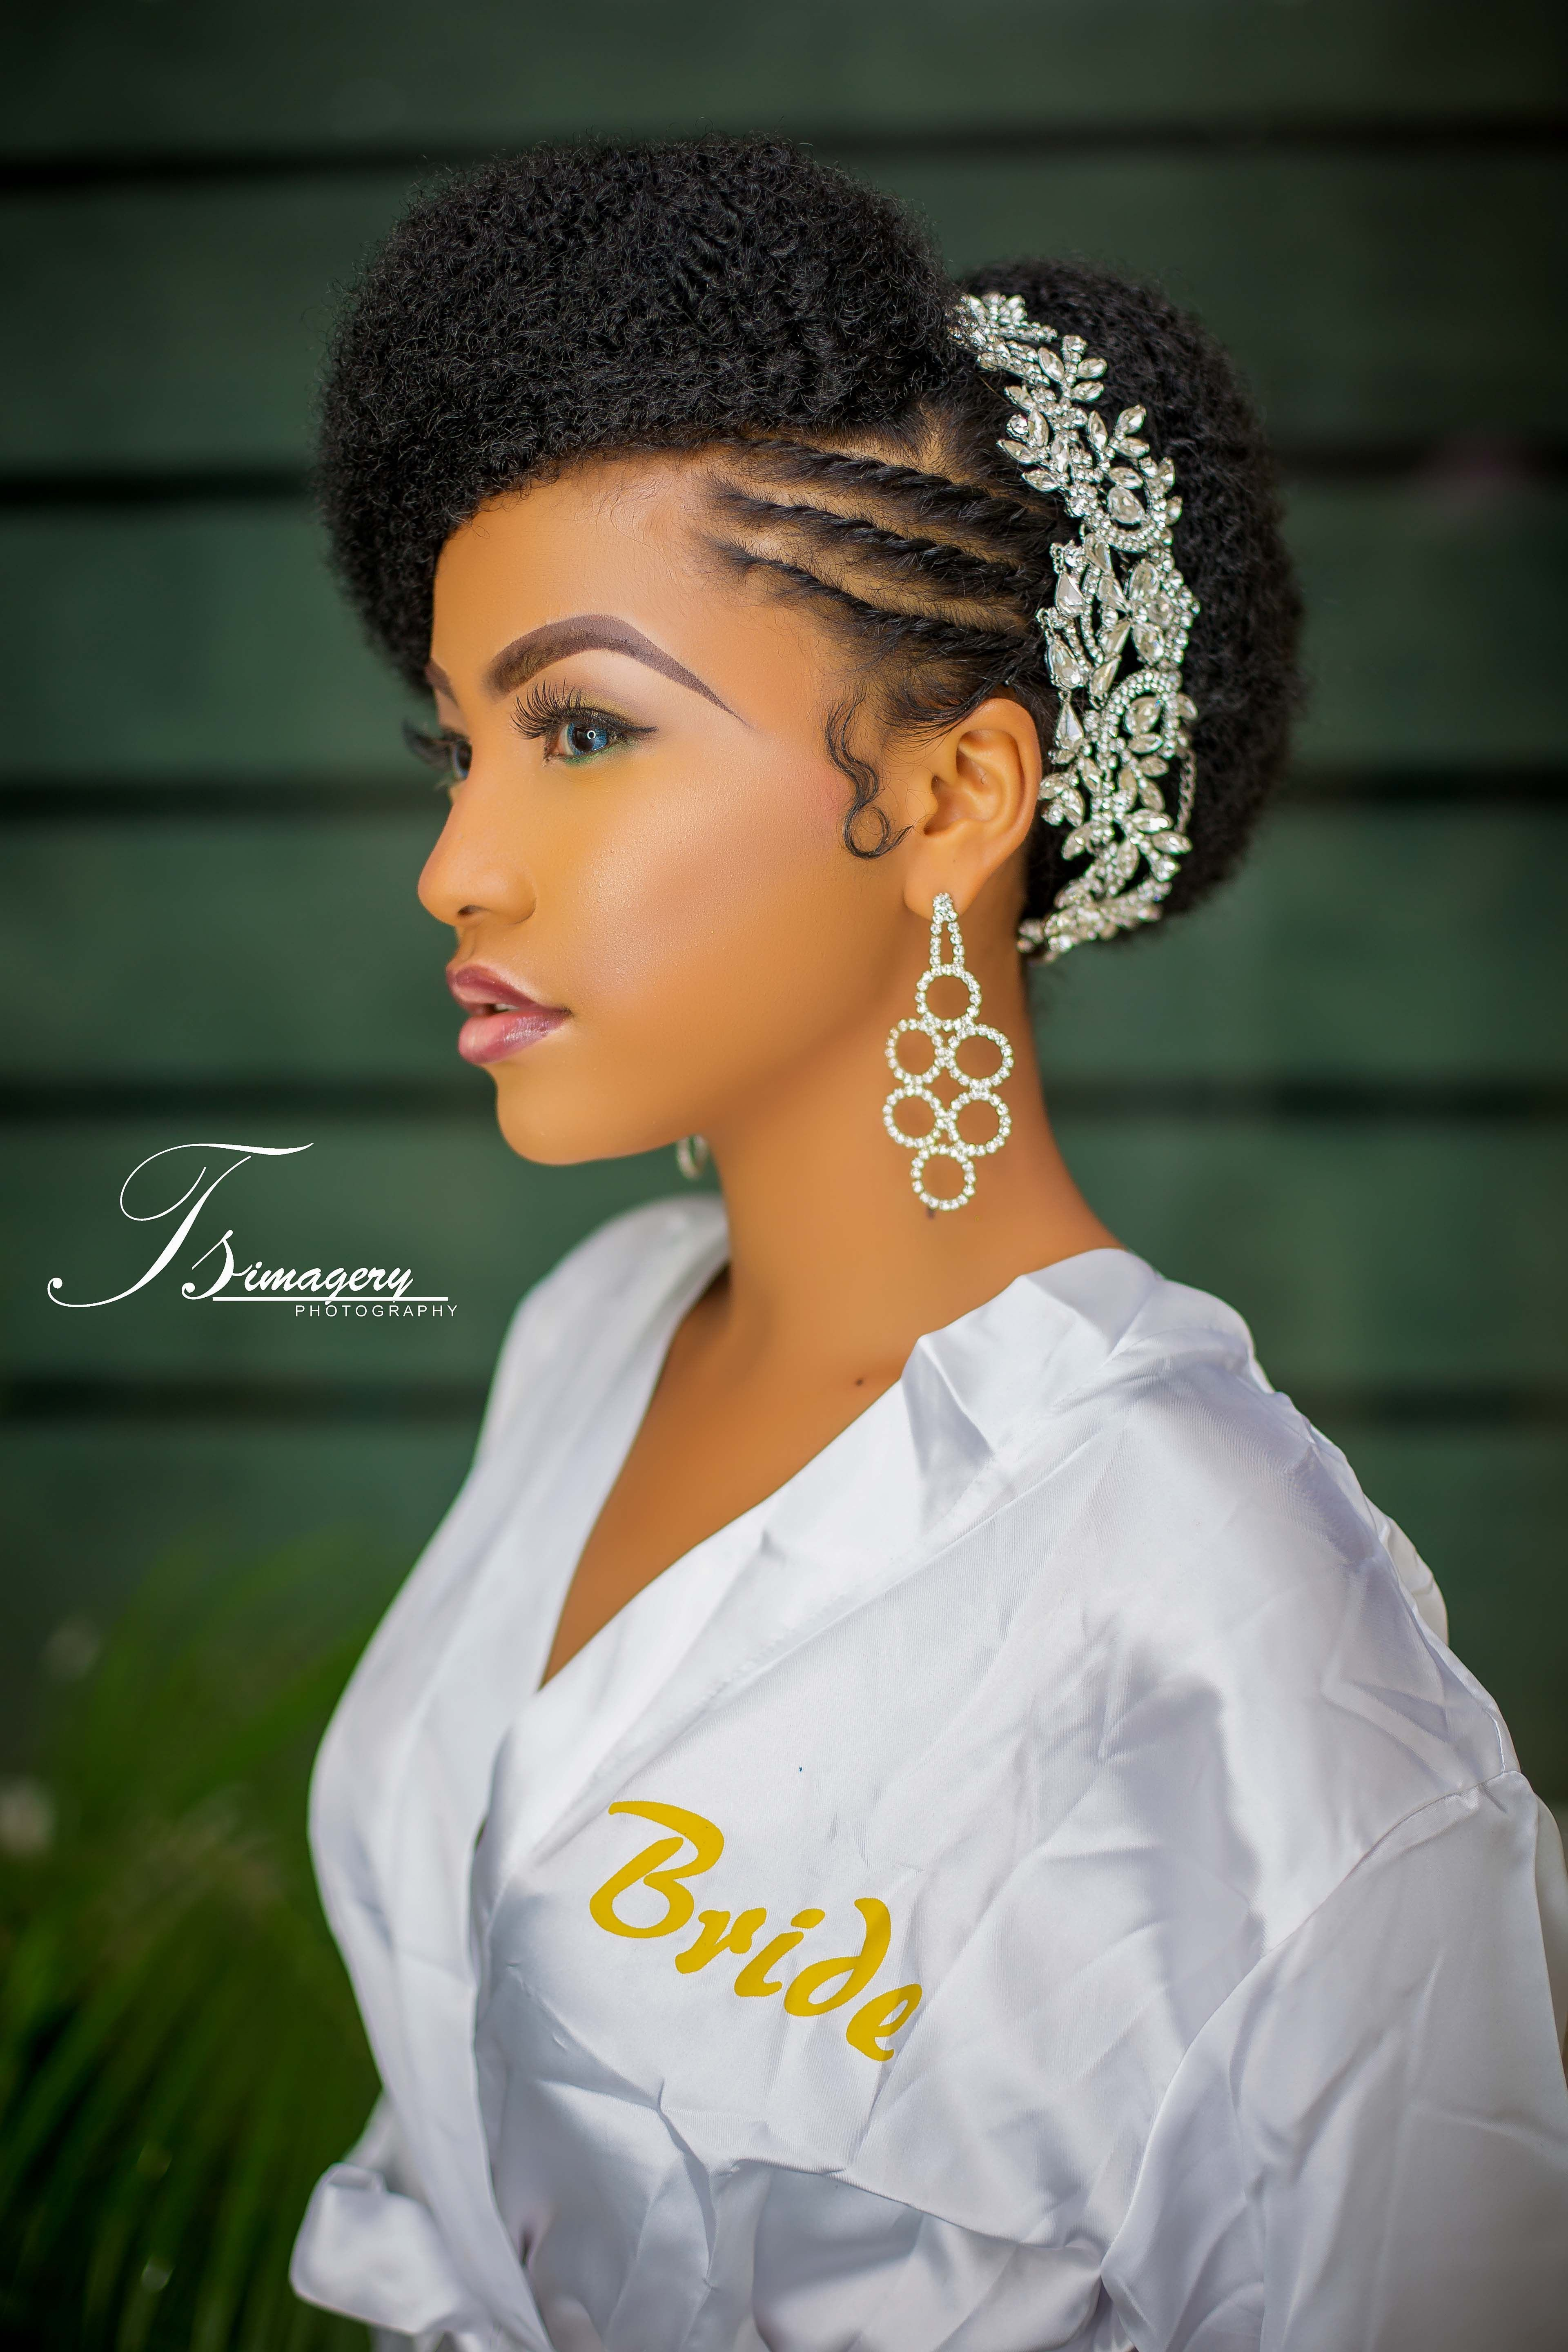 The Best Natural Hair Bridal Shoot From Tsimagery Natural Bridal Pictures